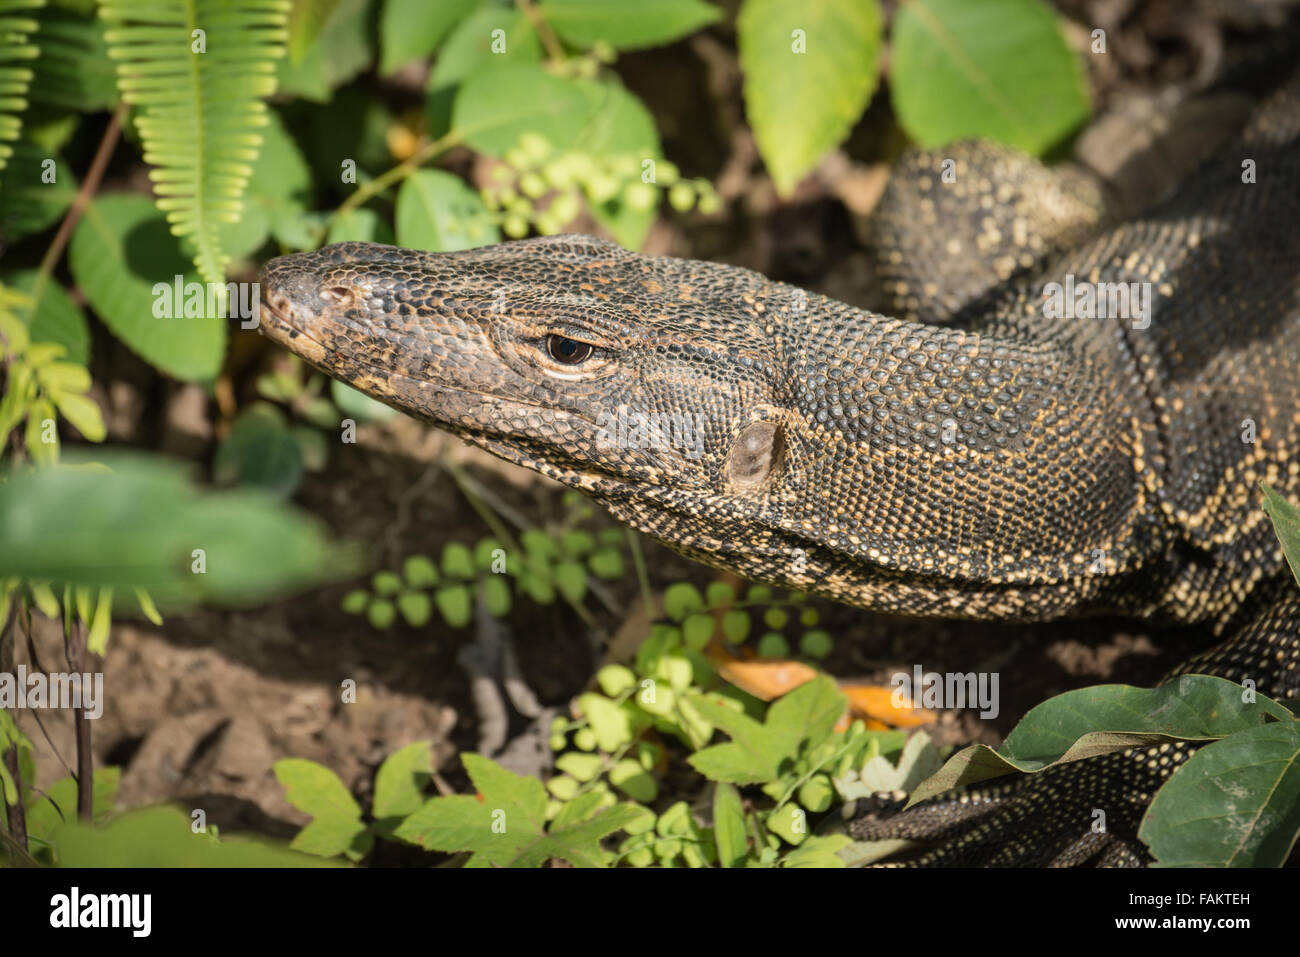 The water monitor (Varanus salvator) is a large lizard native to South and Southeast Asia. Water monitors are one - Stock Image